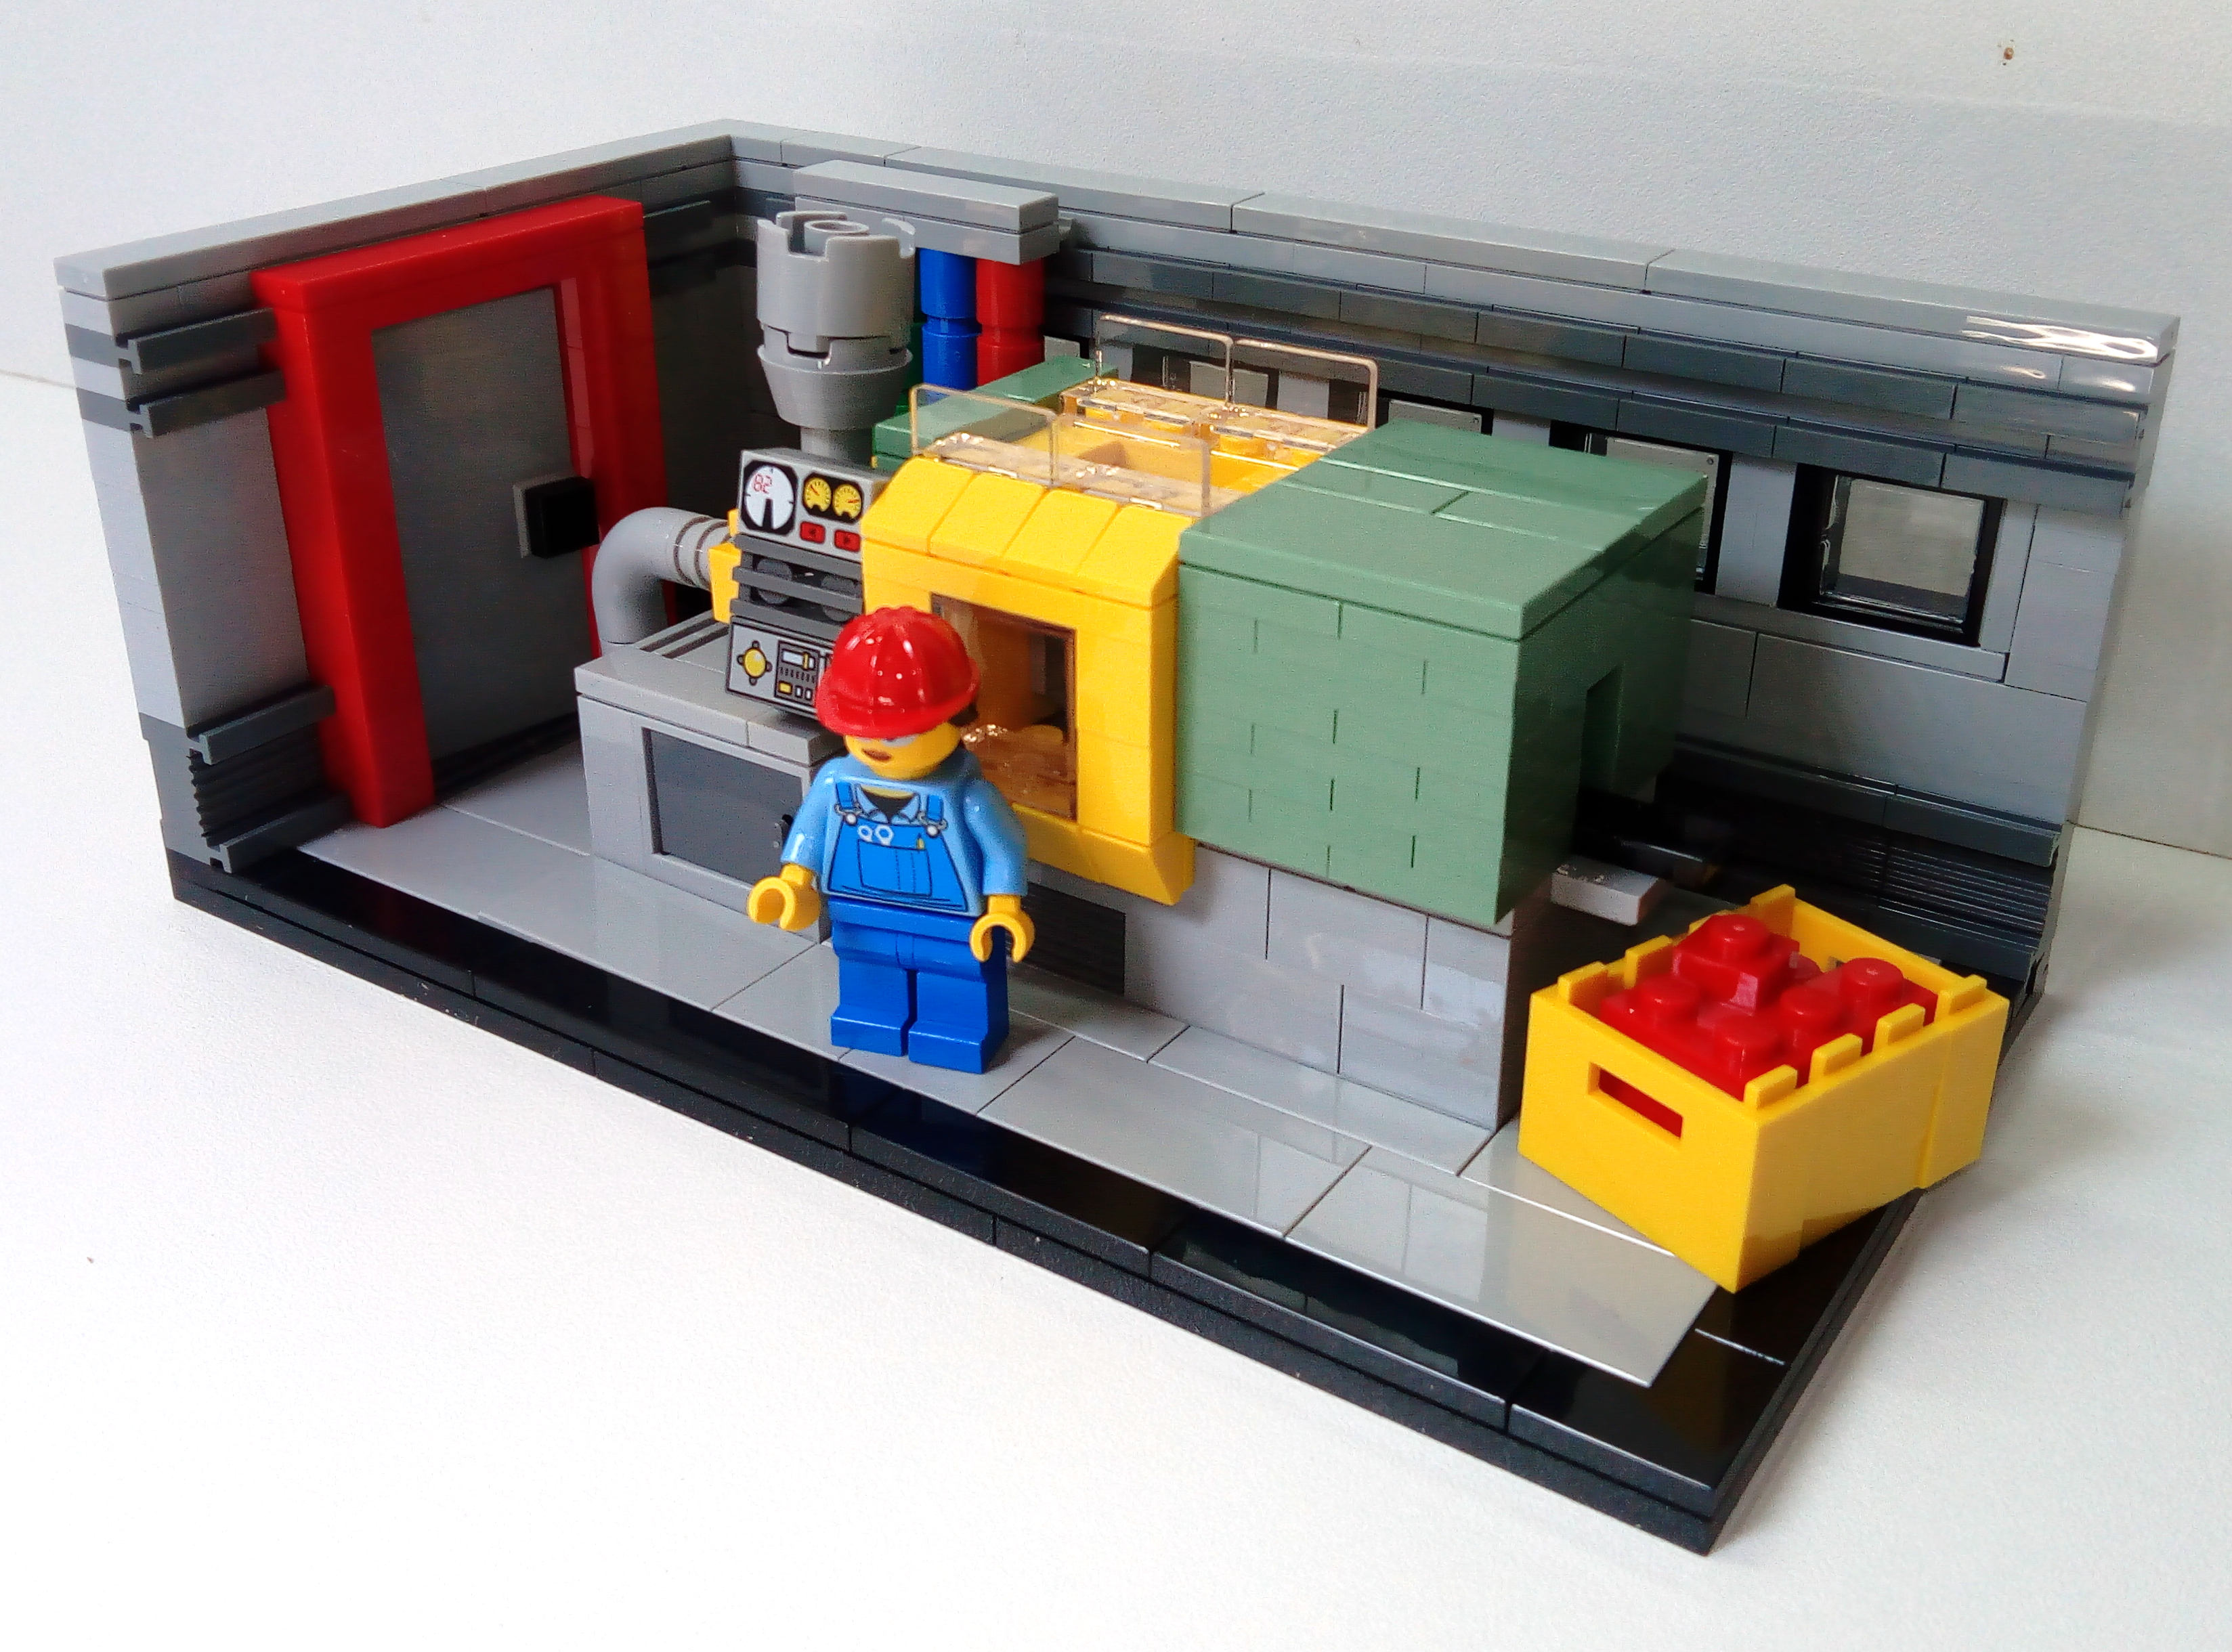 Review: The LEGO Story - BrickLink's AFOL Designer set